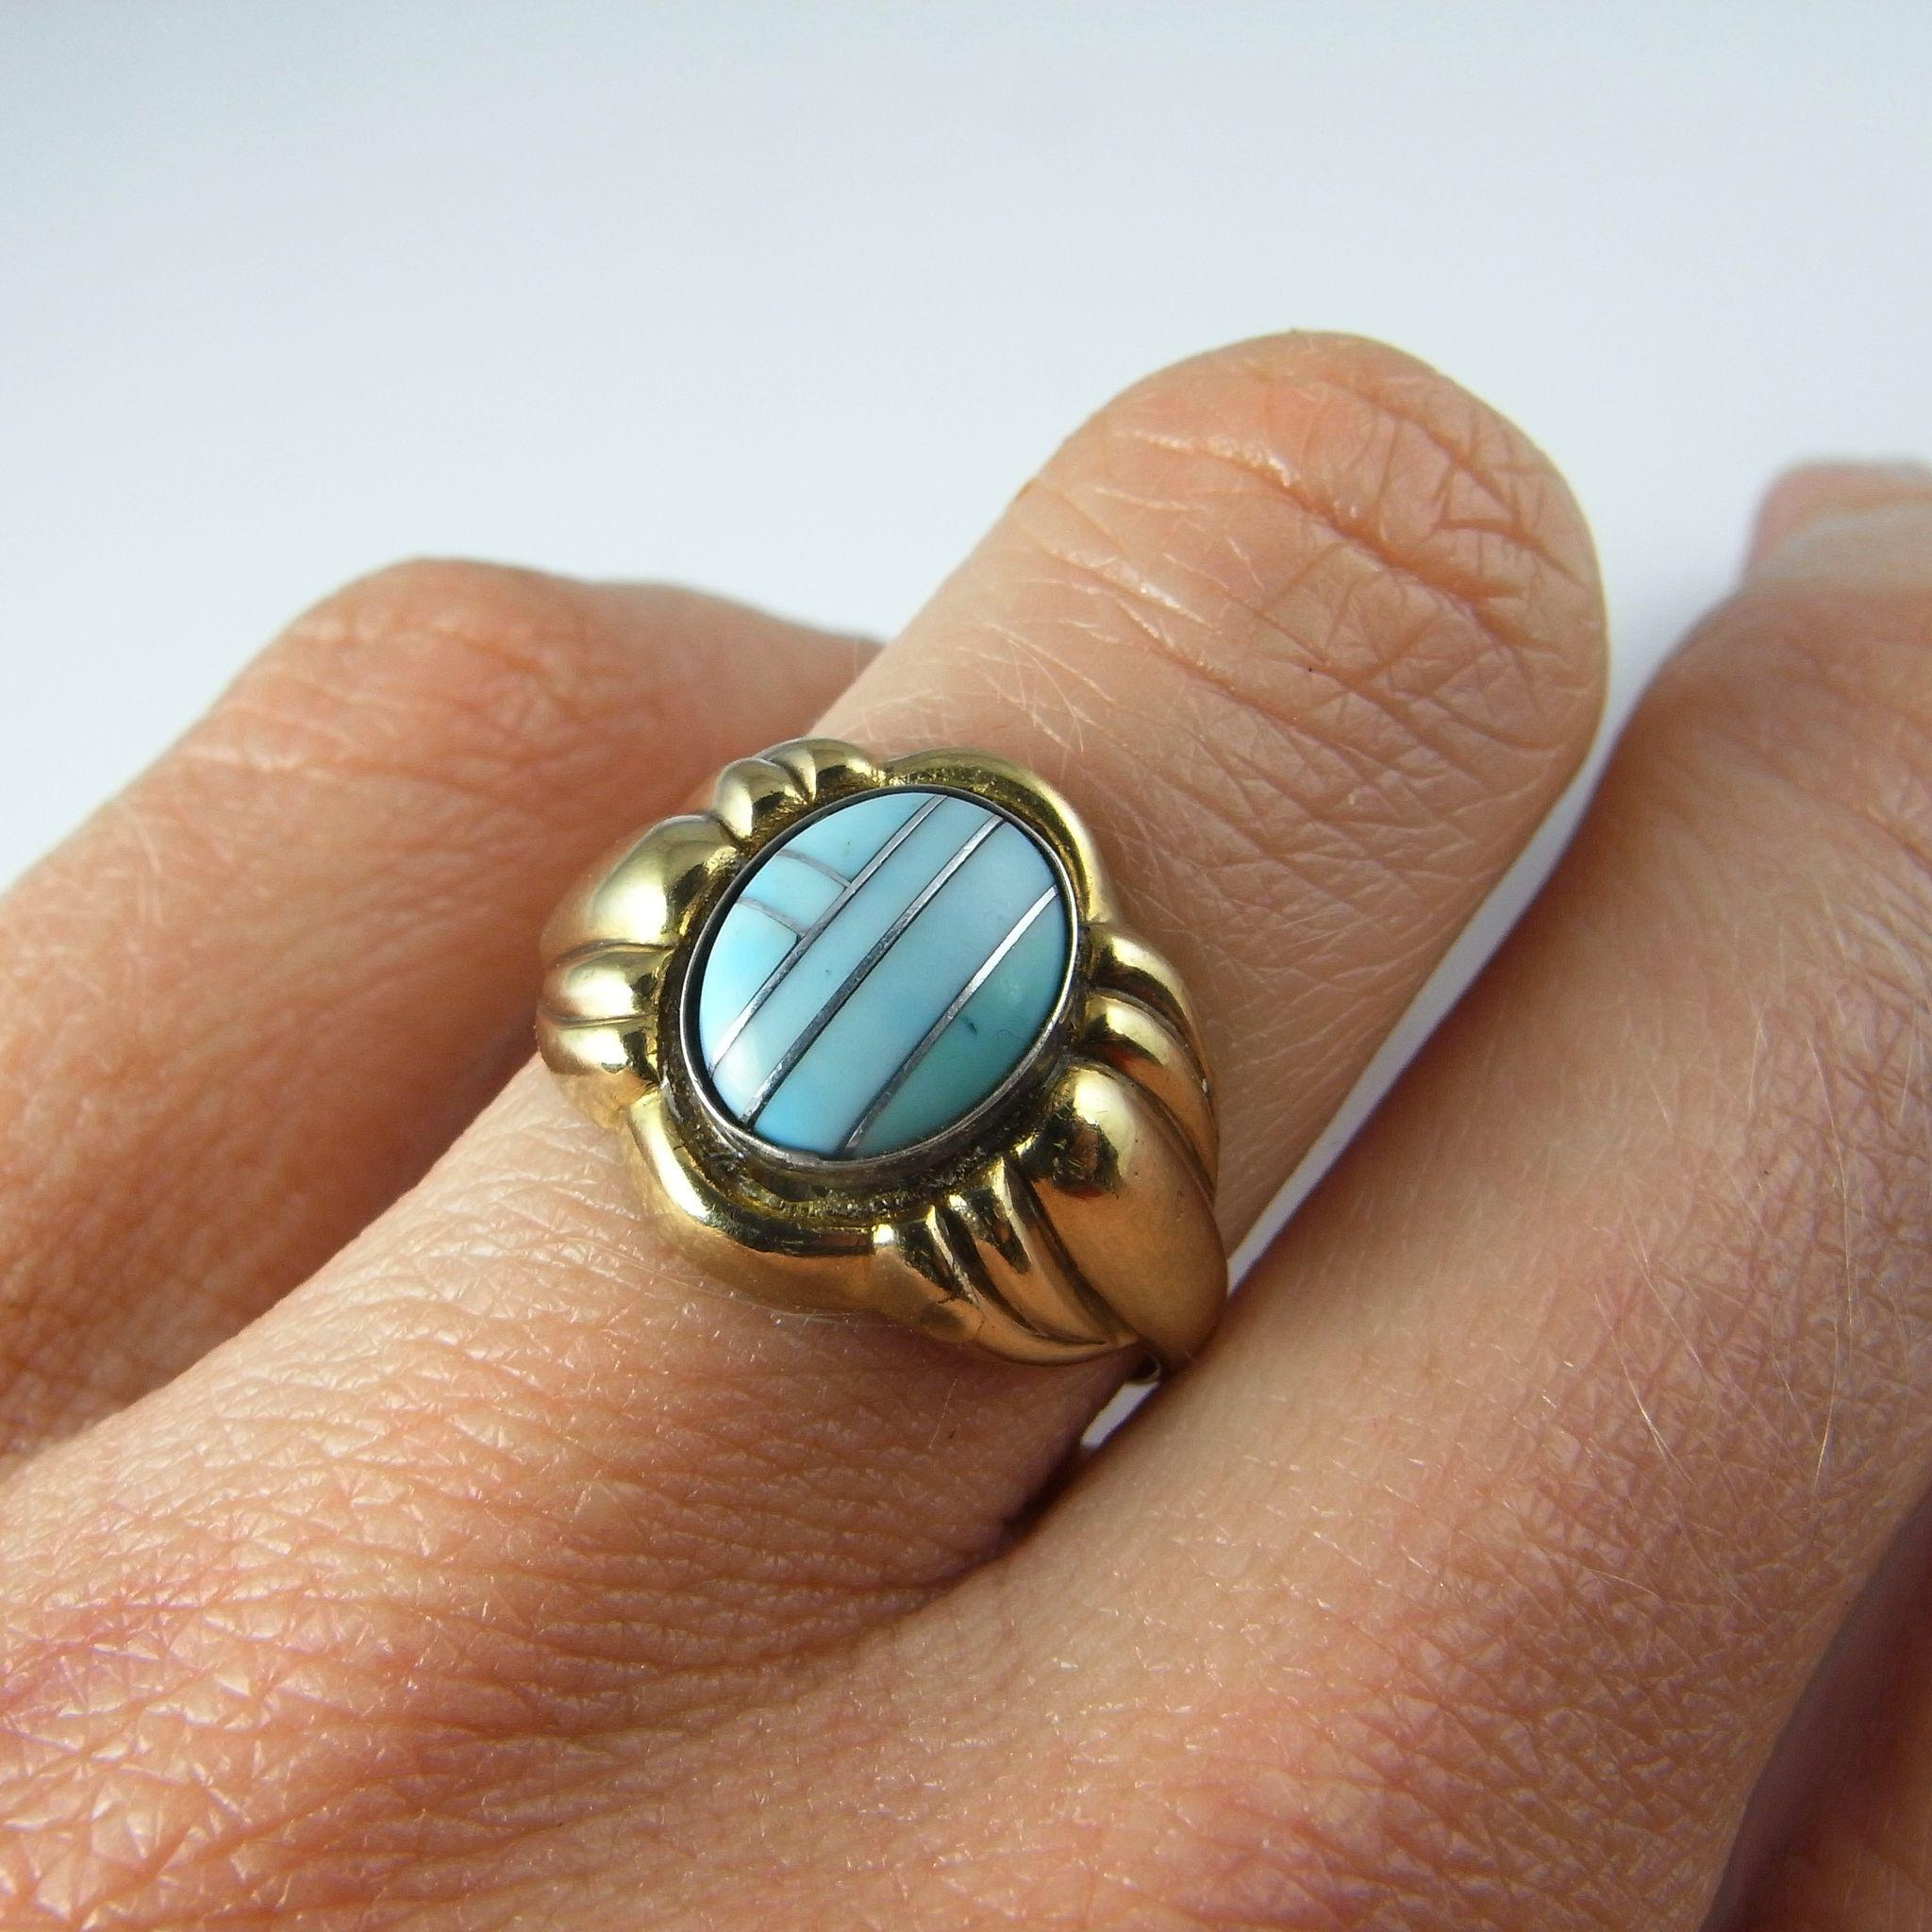 Antique Turquoise Ring Art Deco Gold Ring 1930s Ring Art Deco